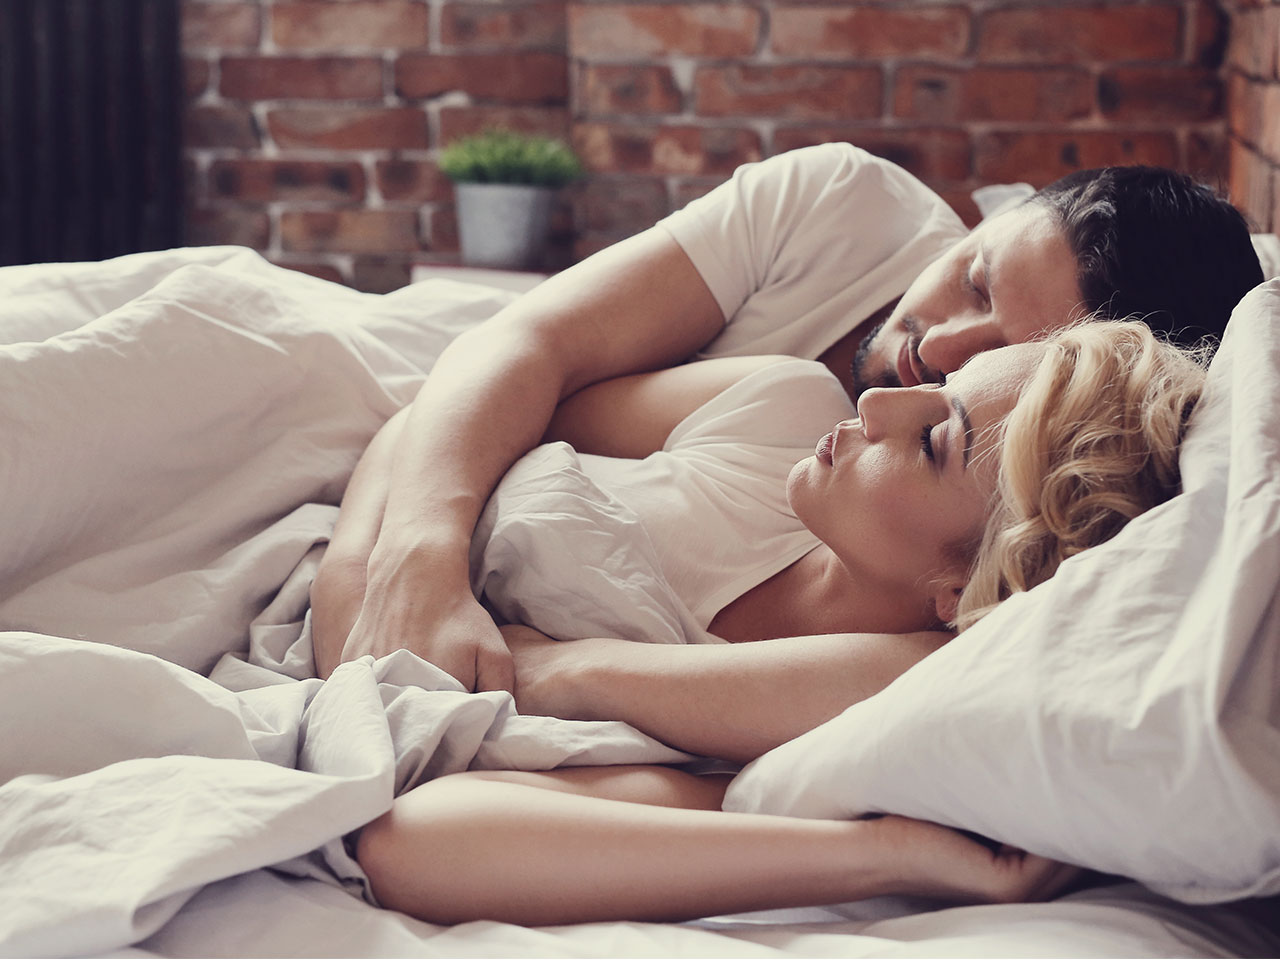 Candid sex tips for women from men